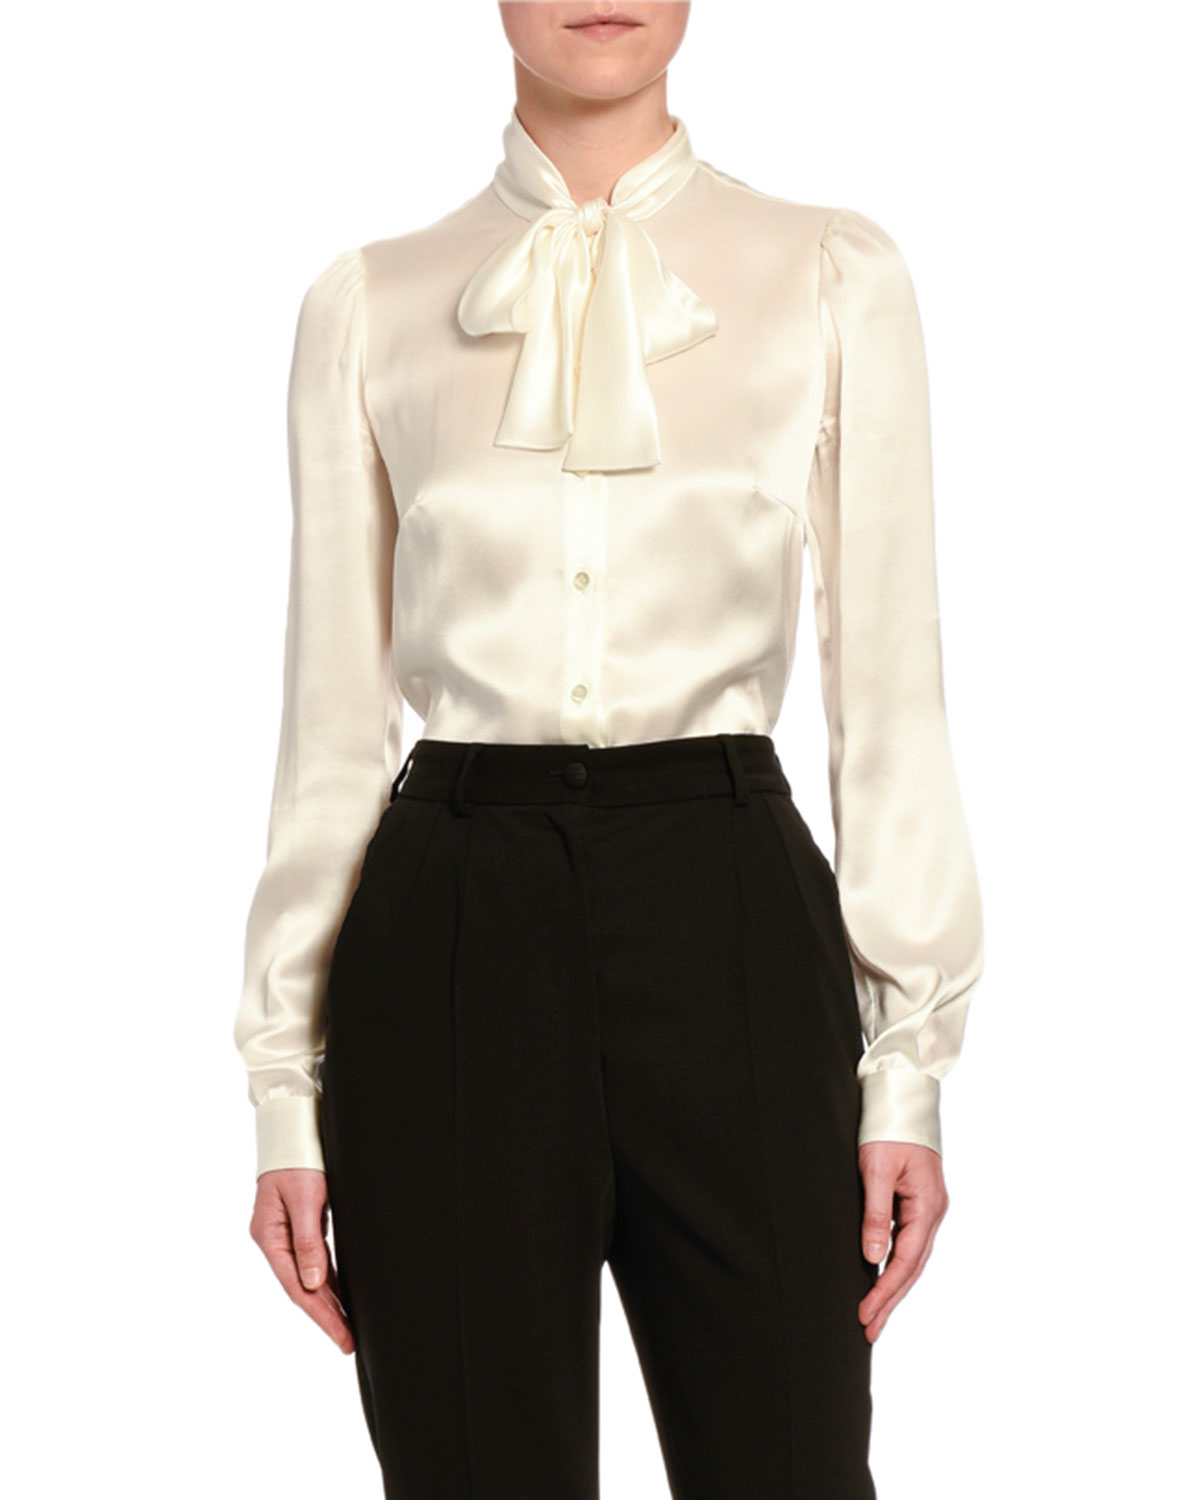 Dolce & Gabbana Fluid Silk Tie-Neck Shirt